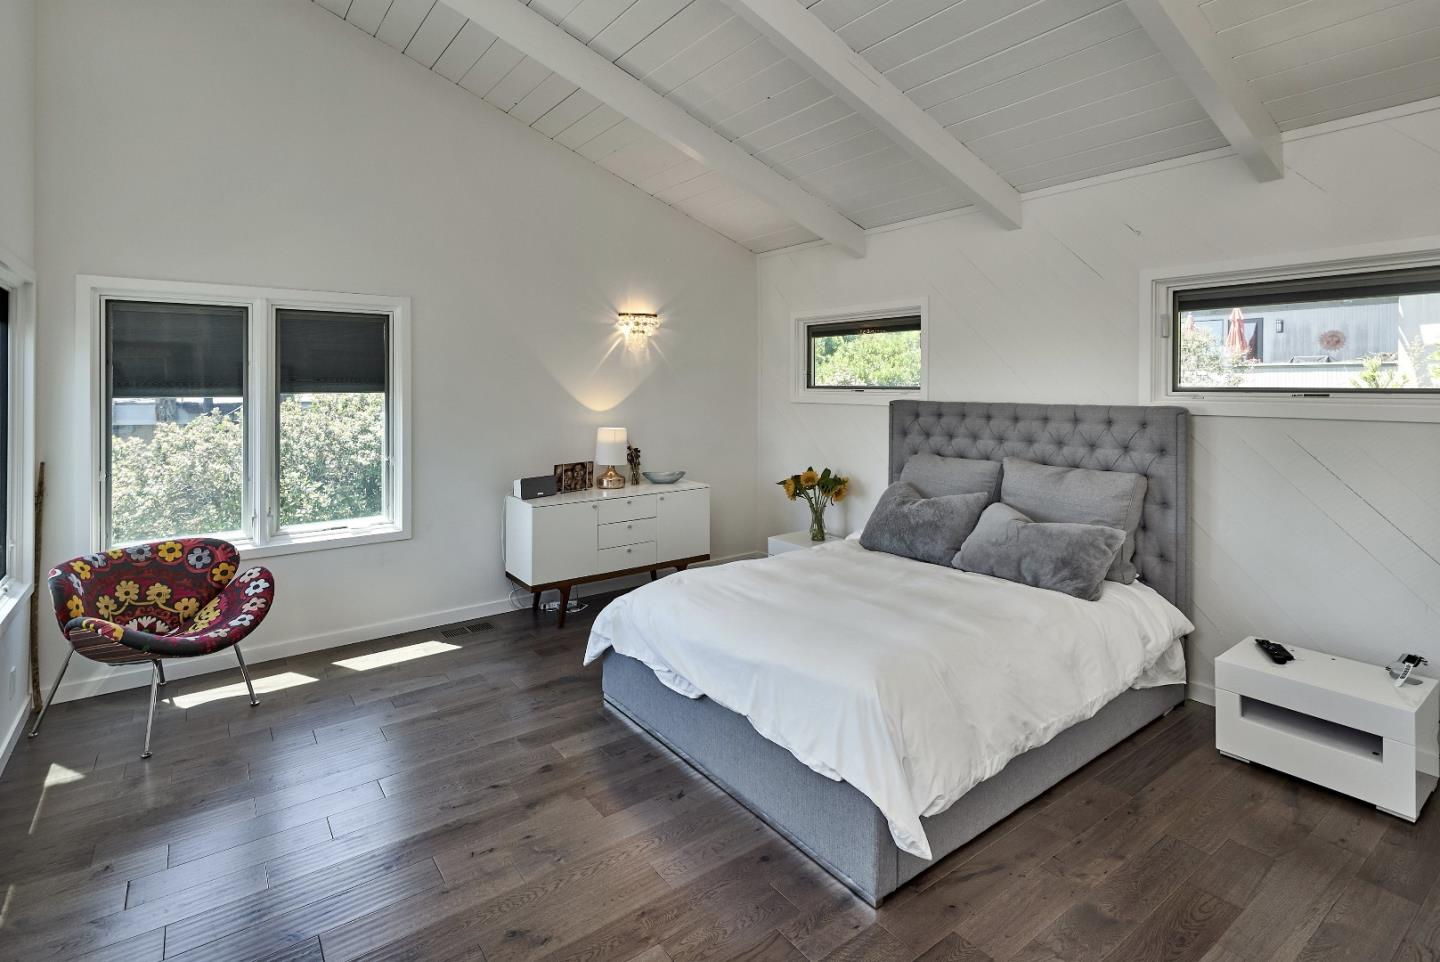 Additional photo for property listing at 2065 Seascape Boulevard  Aptos, California 95003 United States